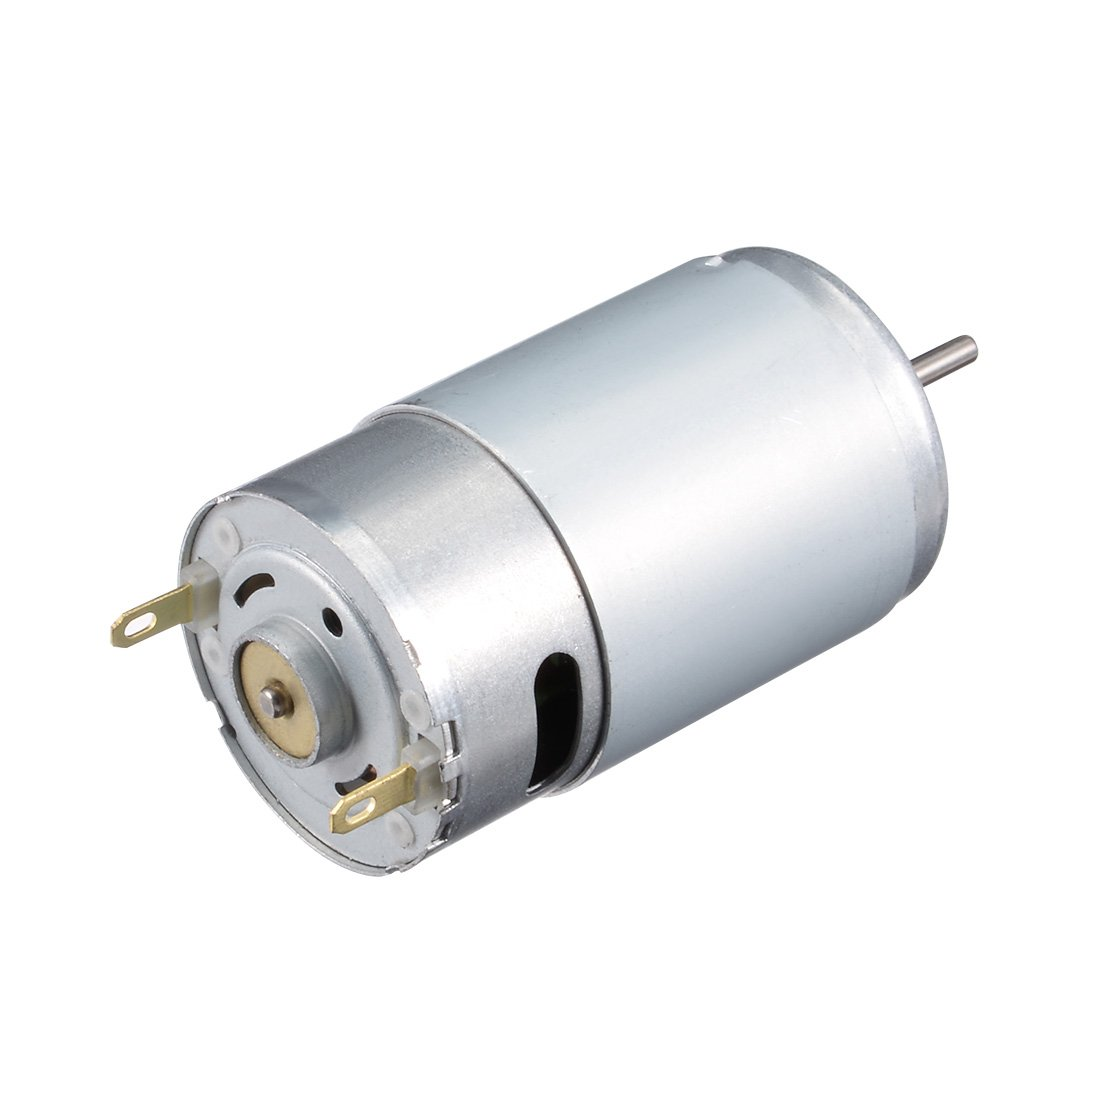 sourcing map DC Motor 12V 4500RPM Electric Motor Double Shaft for RC Boat Toys Model DIY Hobby